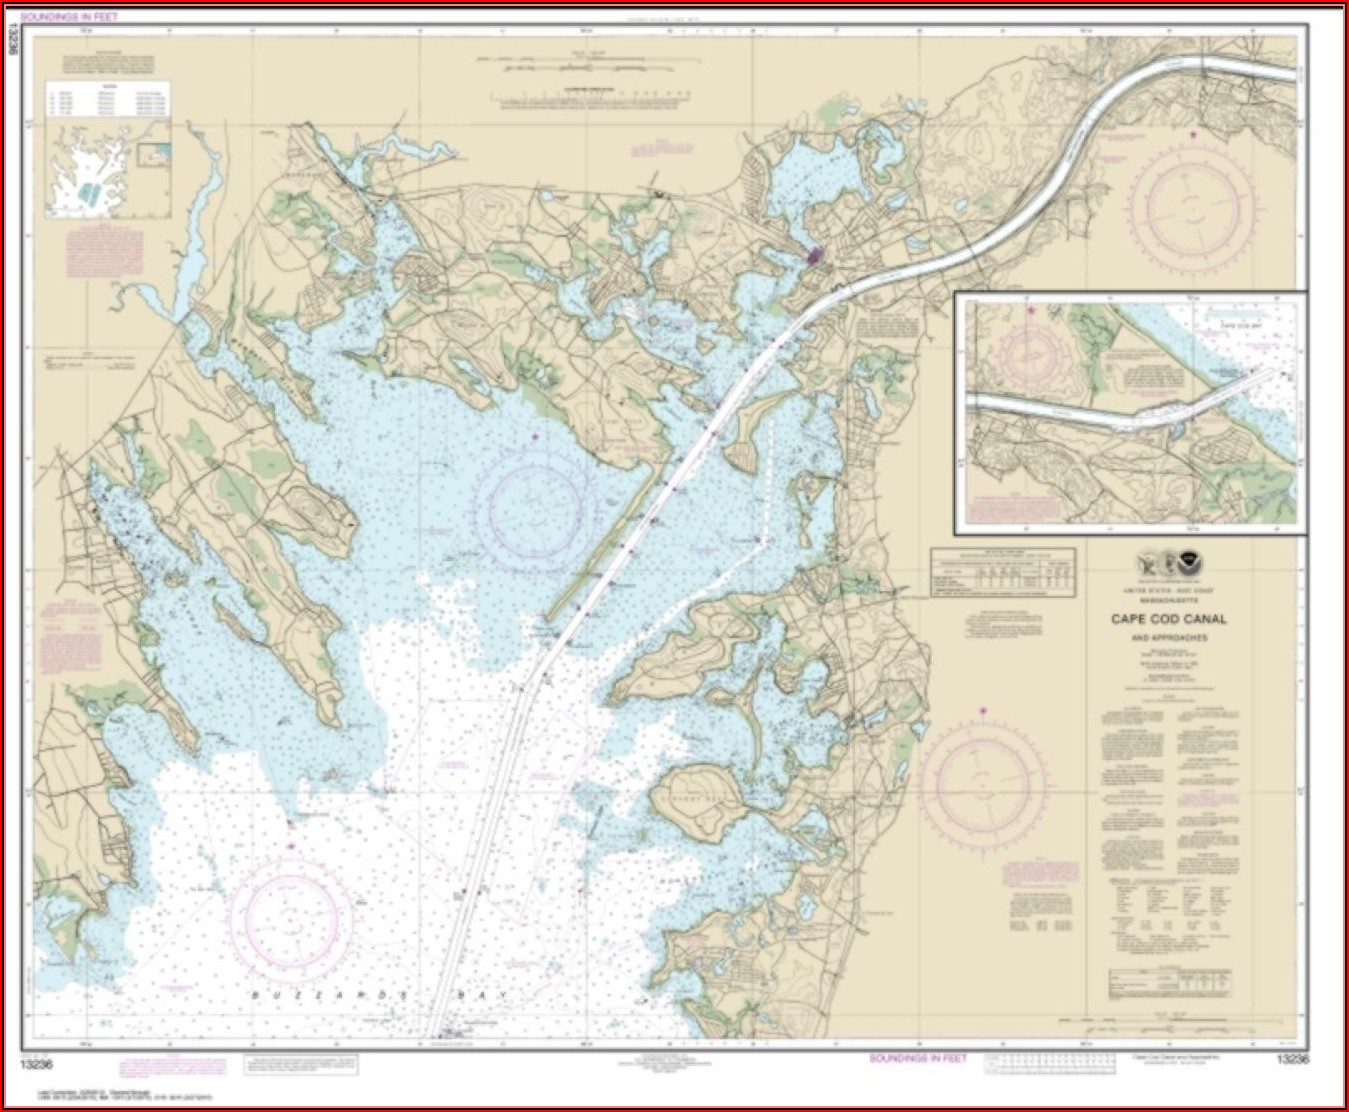 Nautical Chart Cape Cod Canal